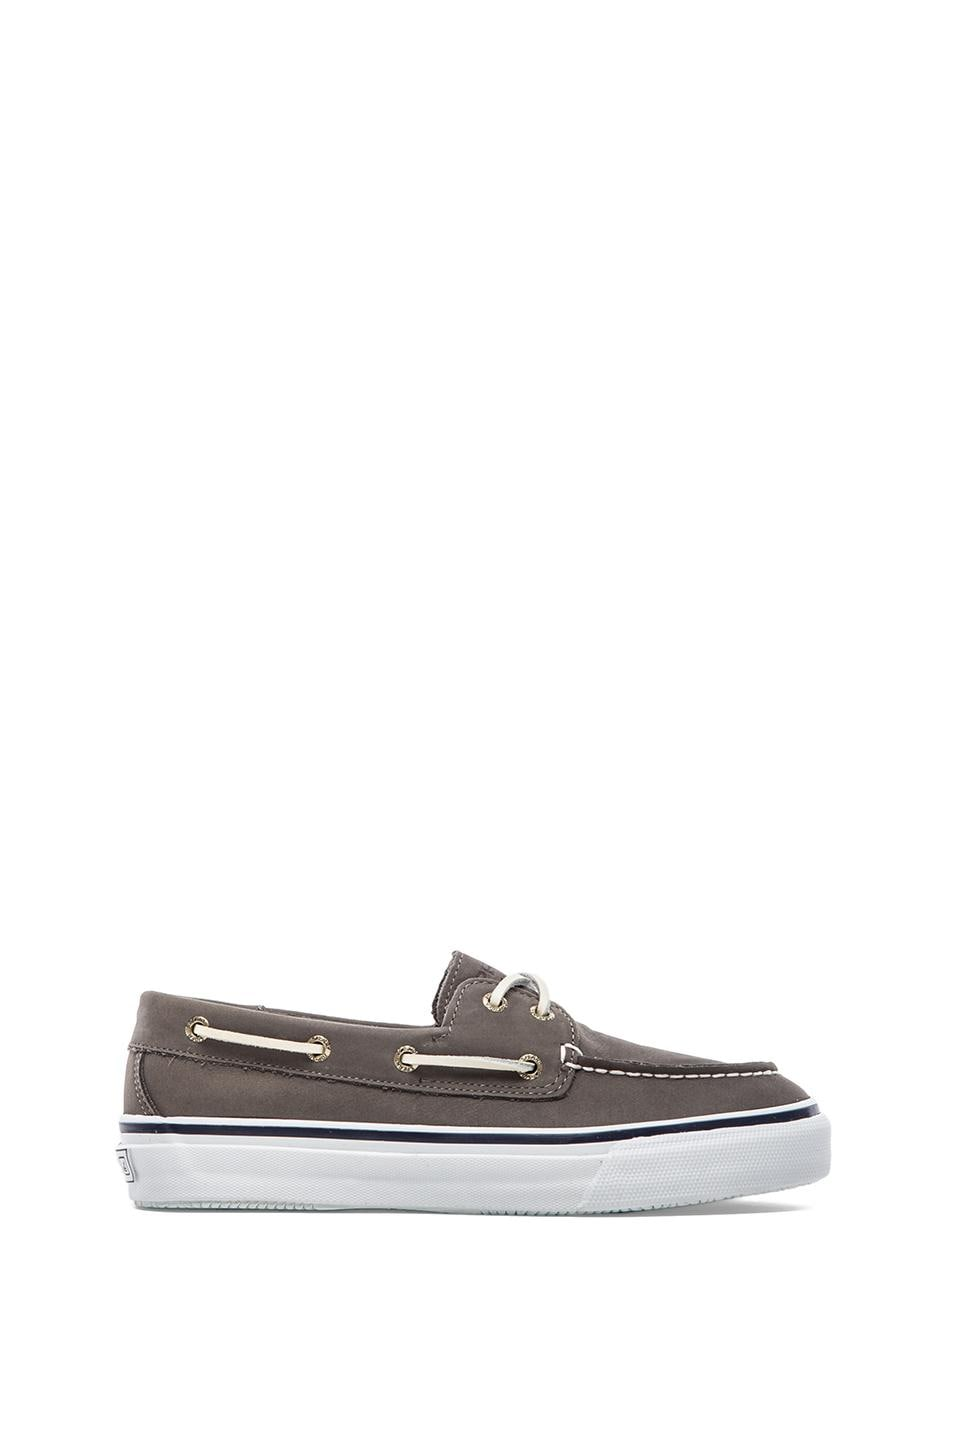 Sperry Top-Sider Bahama Washable in Grey